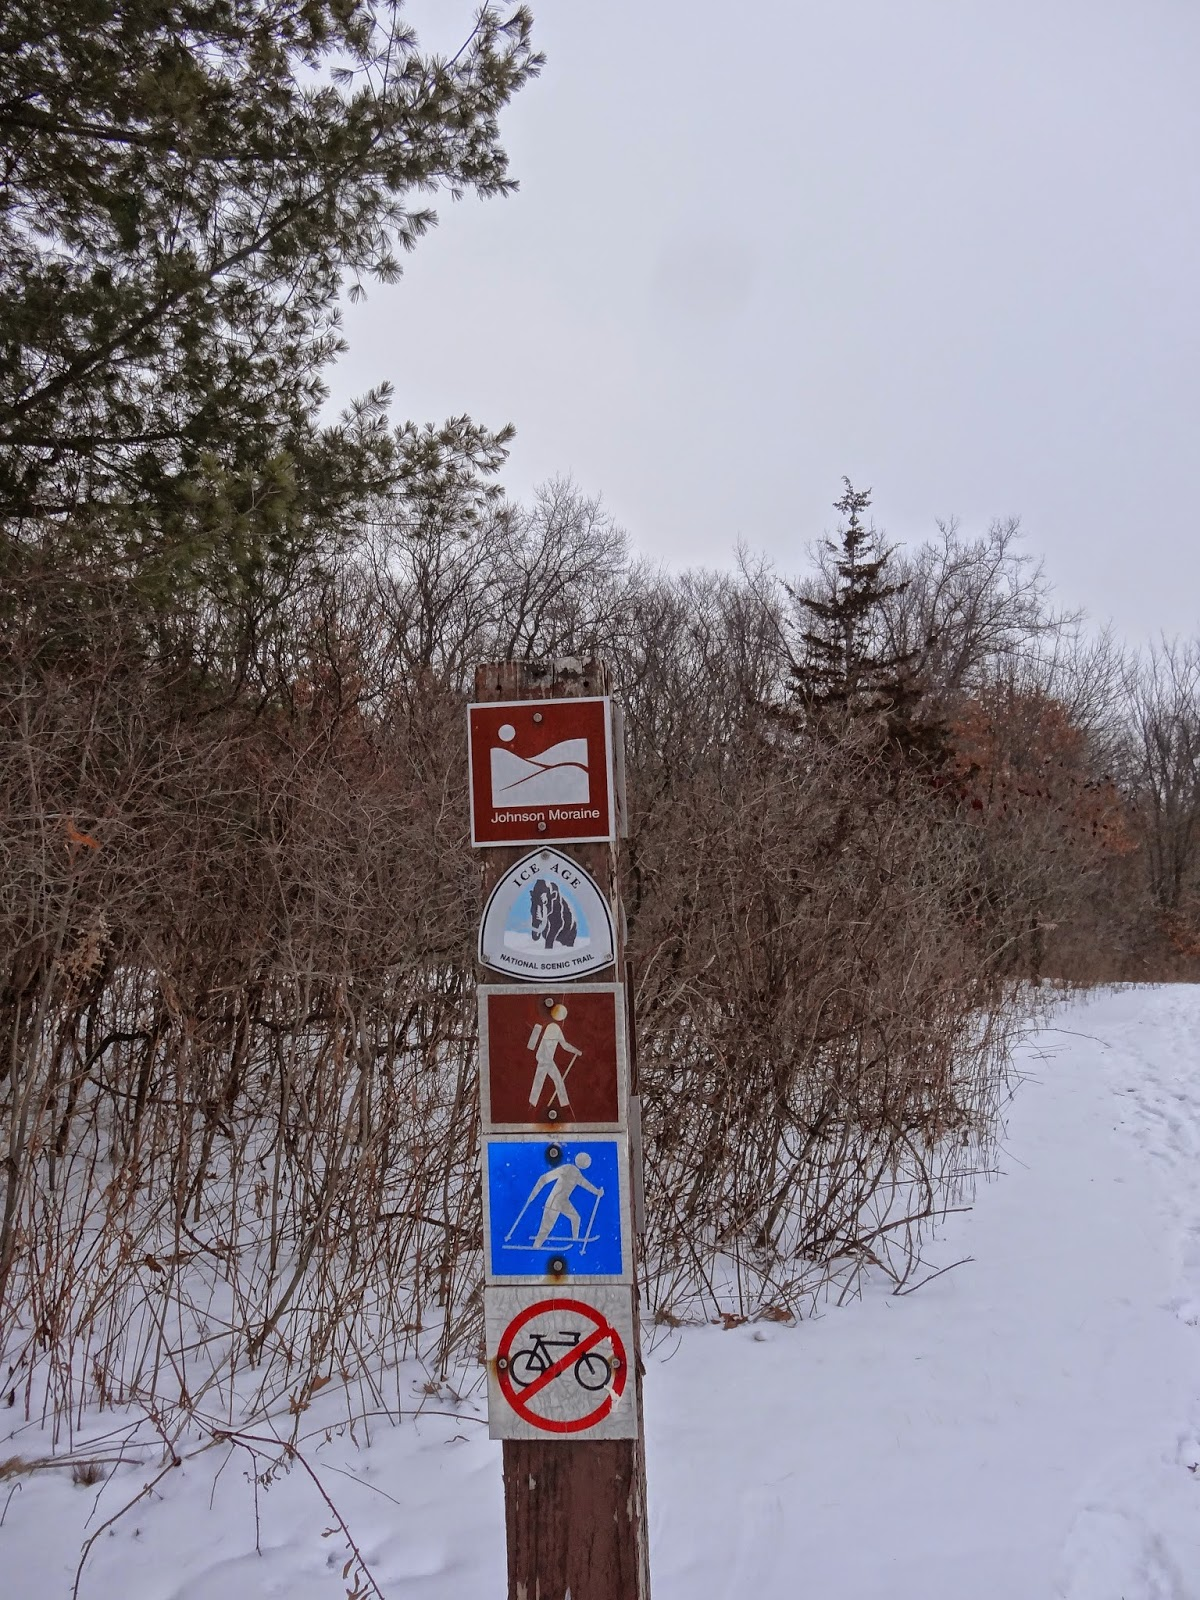 This Johnson Moraine Loop portion of the Ice Age Trail is closed for hiking with the trail is groomed for cross country skiing.